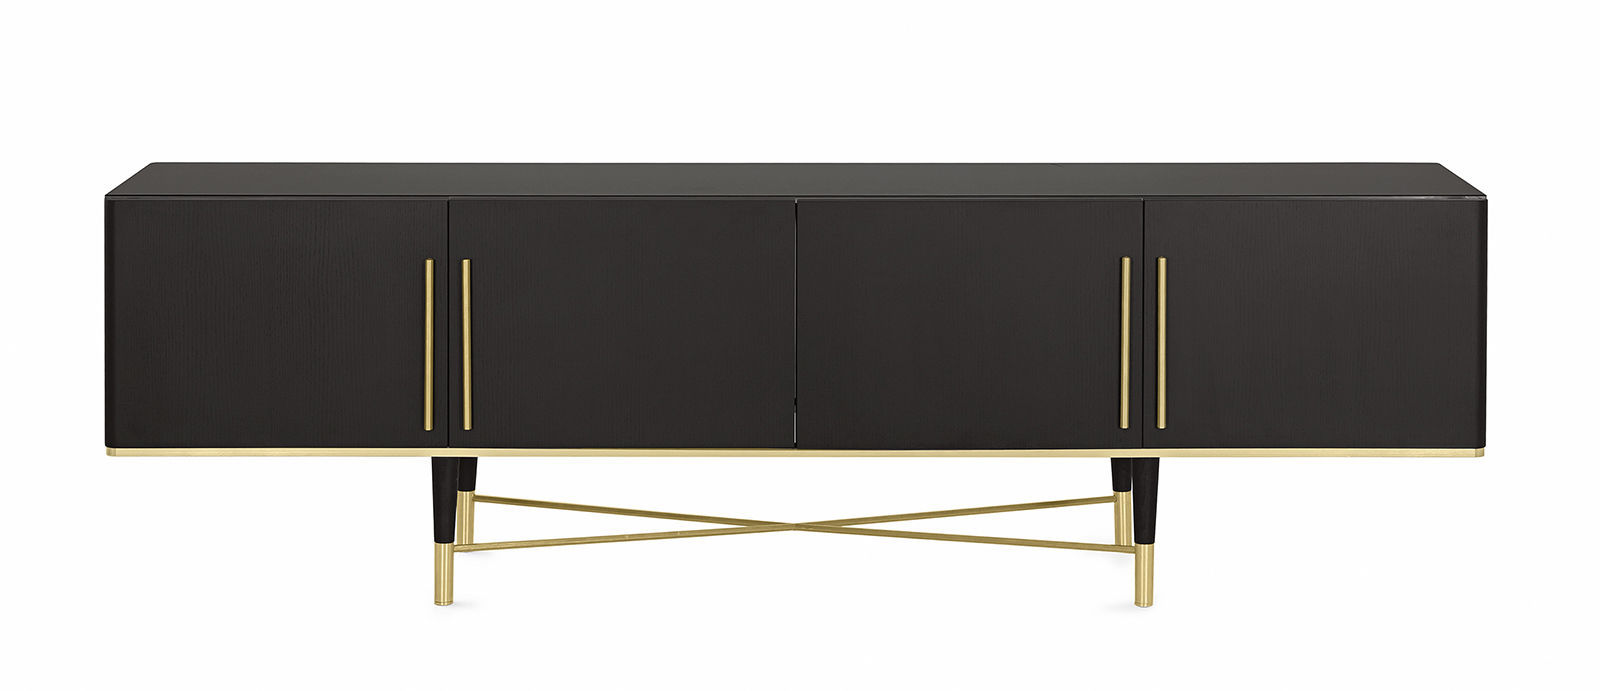 Contemporary Sideboard Tama Credence Gallotti Radice Wooden With Shelf Black